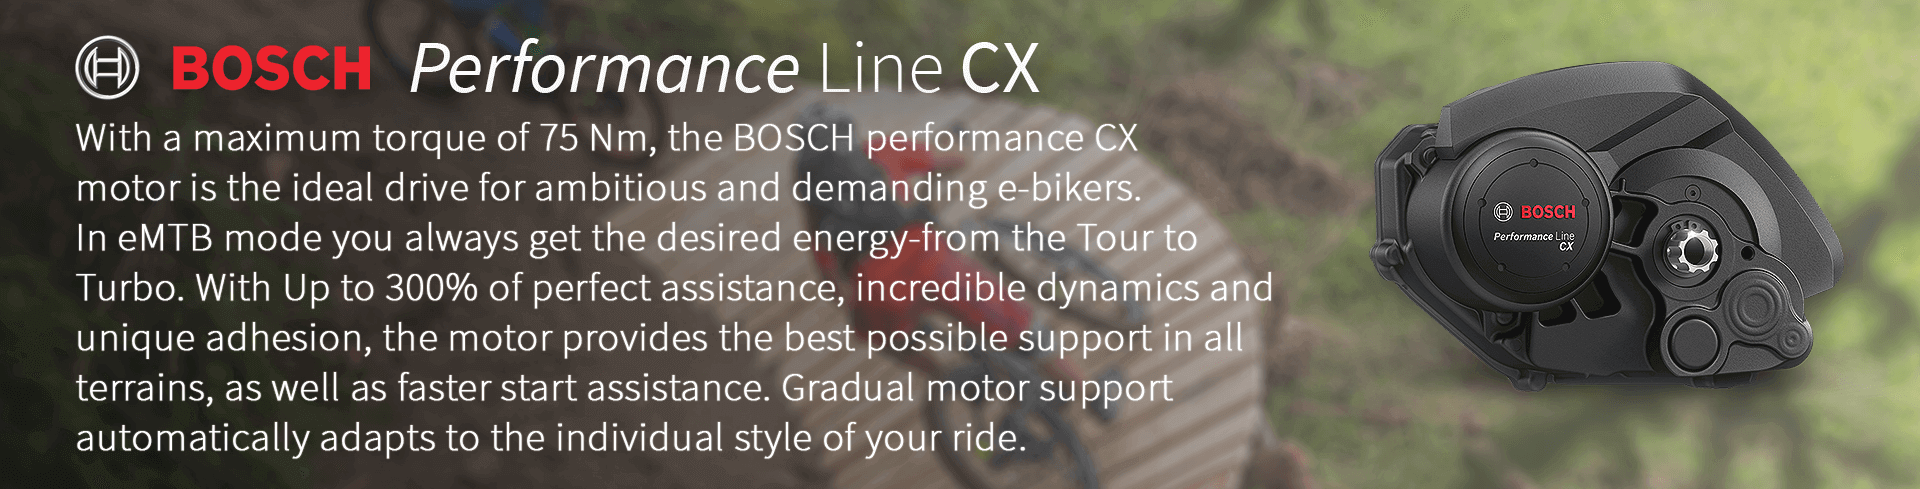 With a maximum torque of 75 Nm, the BOSCH performance CX  motor is the ideal drive for ambitious and demanding e-bikers.  In eMTB mode you always get the desired energy-from the Tour to  Turbo. With Up to 300% of perfect assistance, incredible dynamics and  unique adhesion, the motor provides the best possible support in all  terrains, as well as faster start assistance. Gradual motor support  automatically adapts to the individual style of your ride.